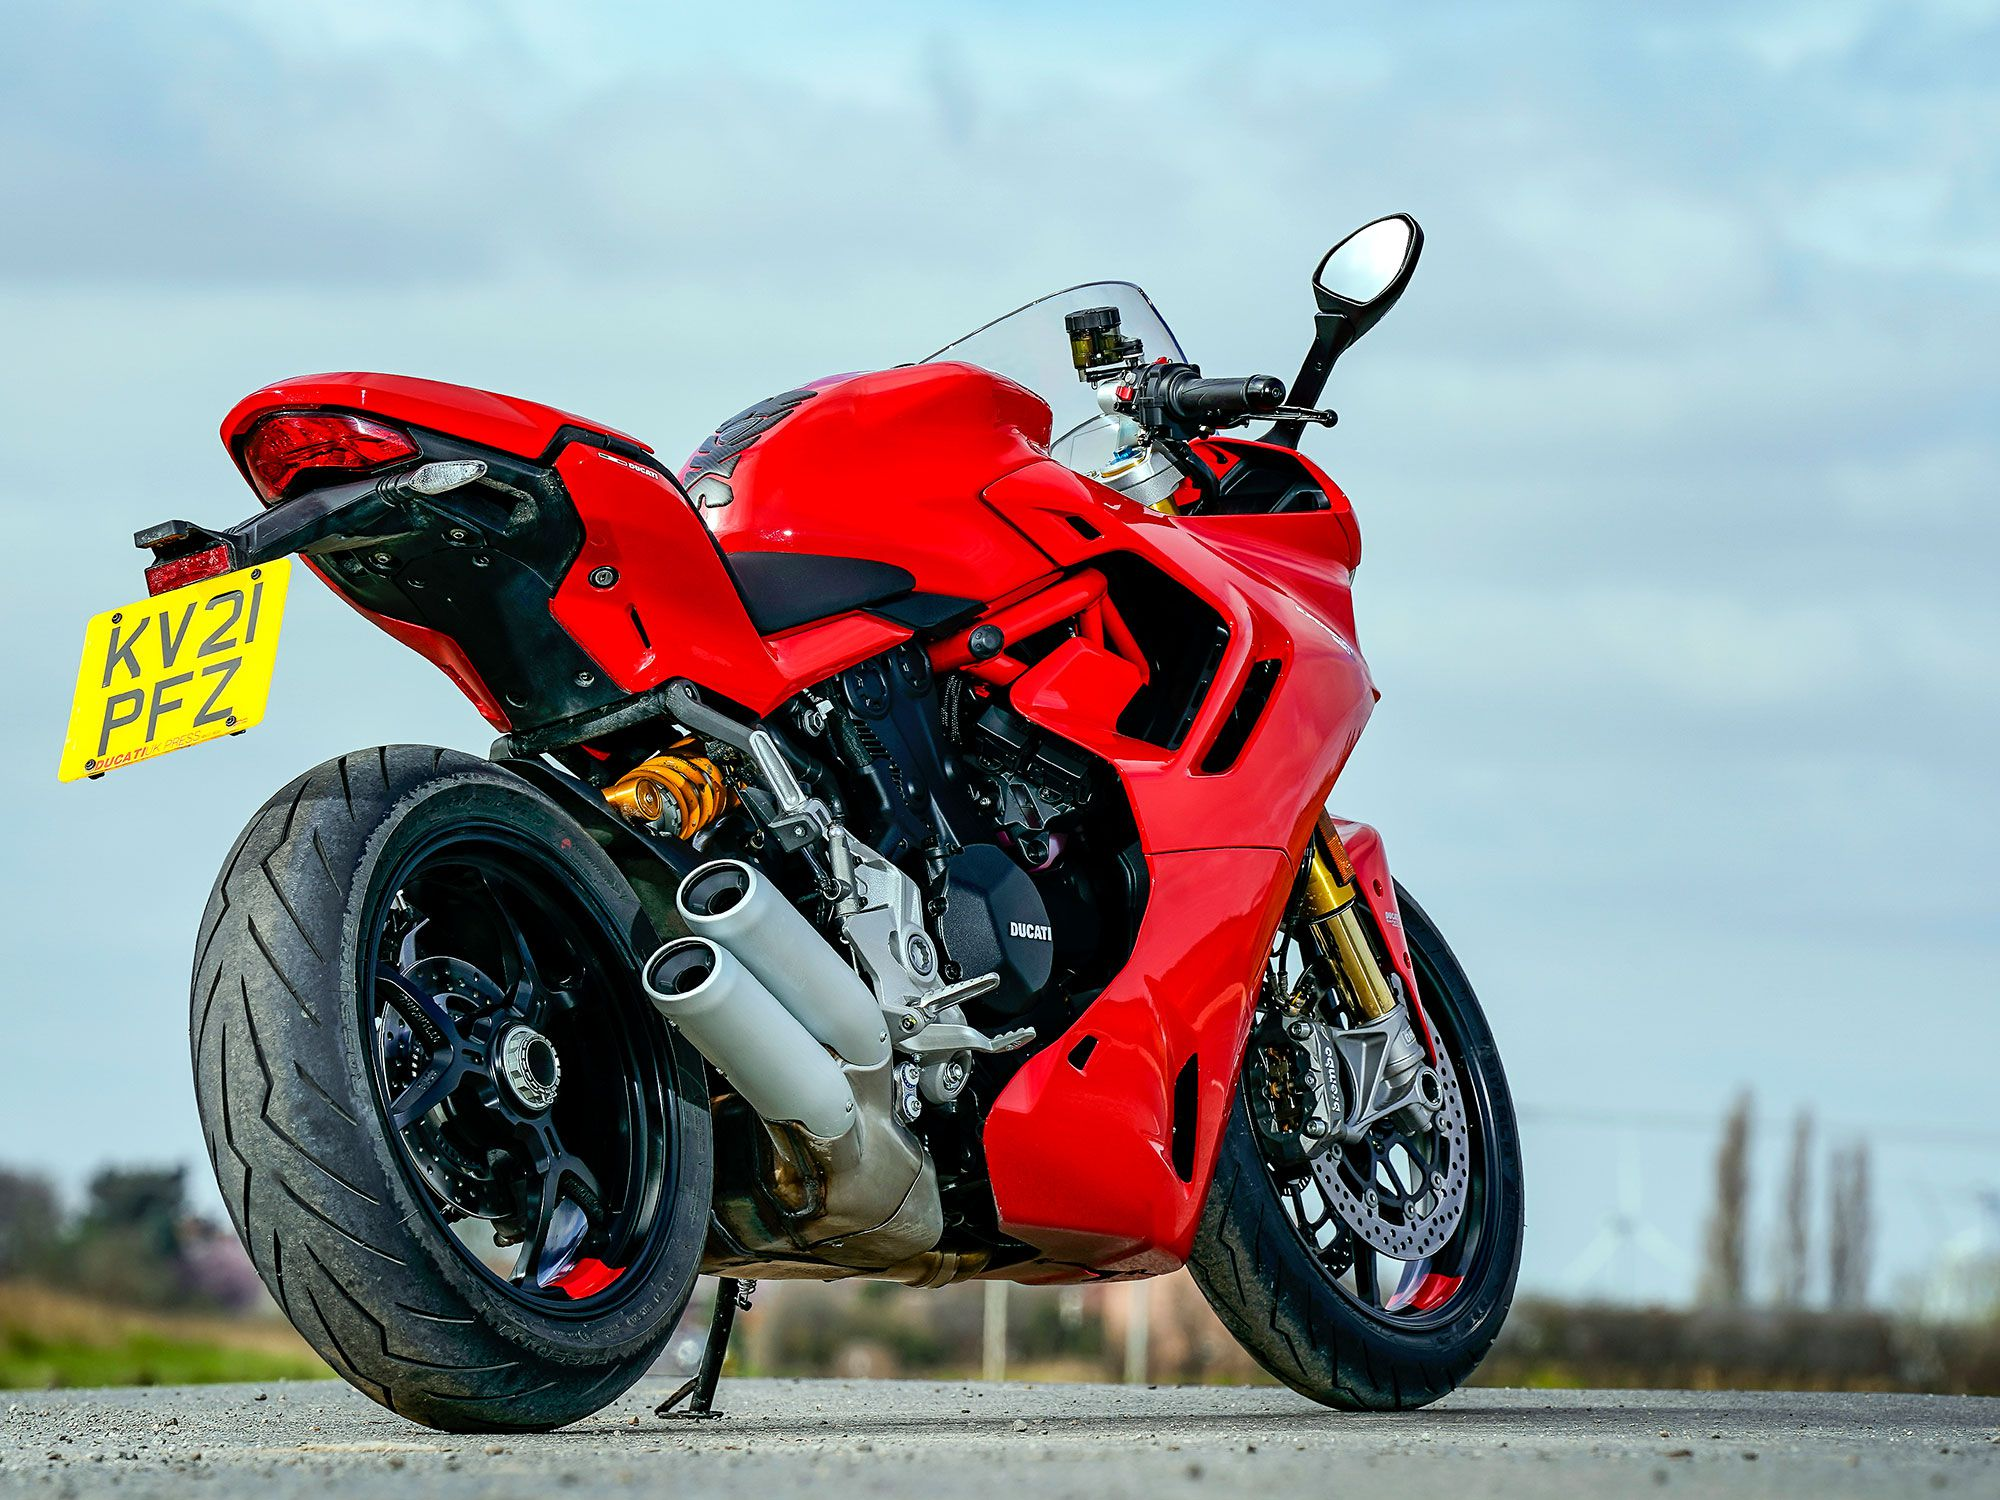 The IMU is linked to the EVO rider aids, Bosch Cornering ABS, Ducati Traction Control (DTC), Ducati Wheelie Control (DWC), and even the Ducati Quckshifter up/down (DQS). The parameters of these rider aids are linked to the three rider modes: Sport, Touring, and Urban.